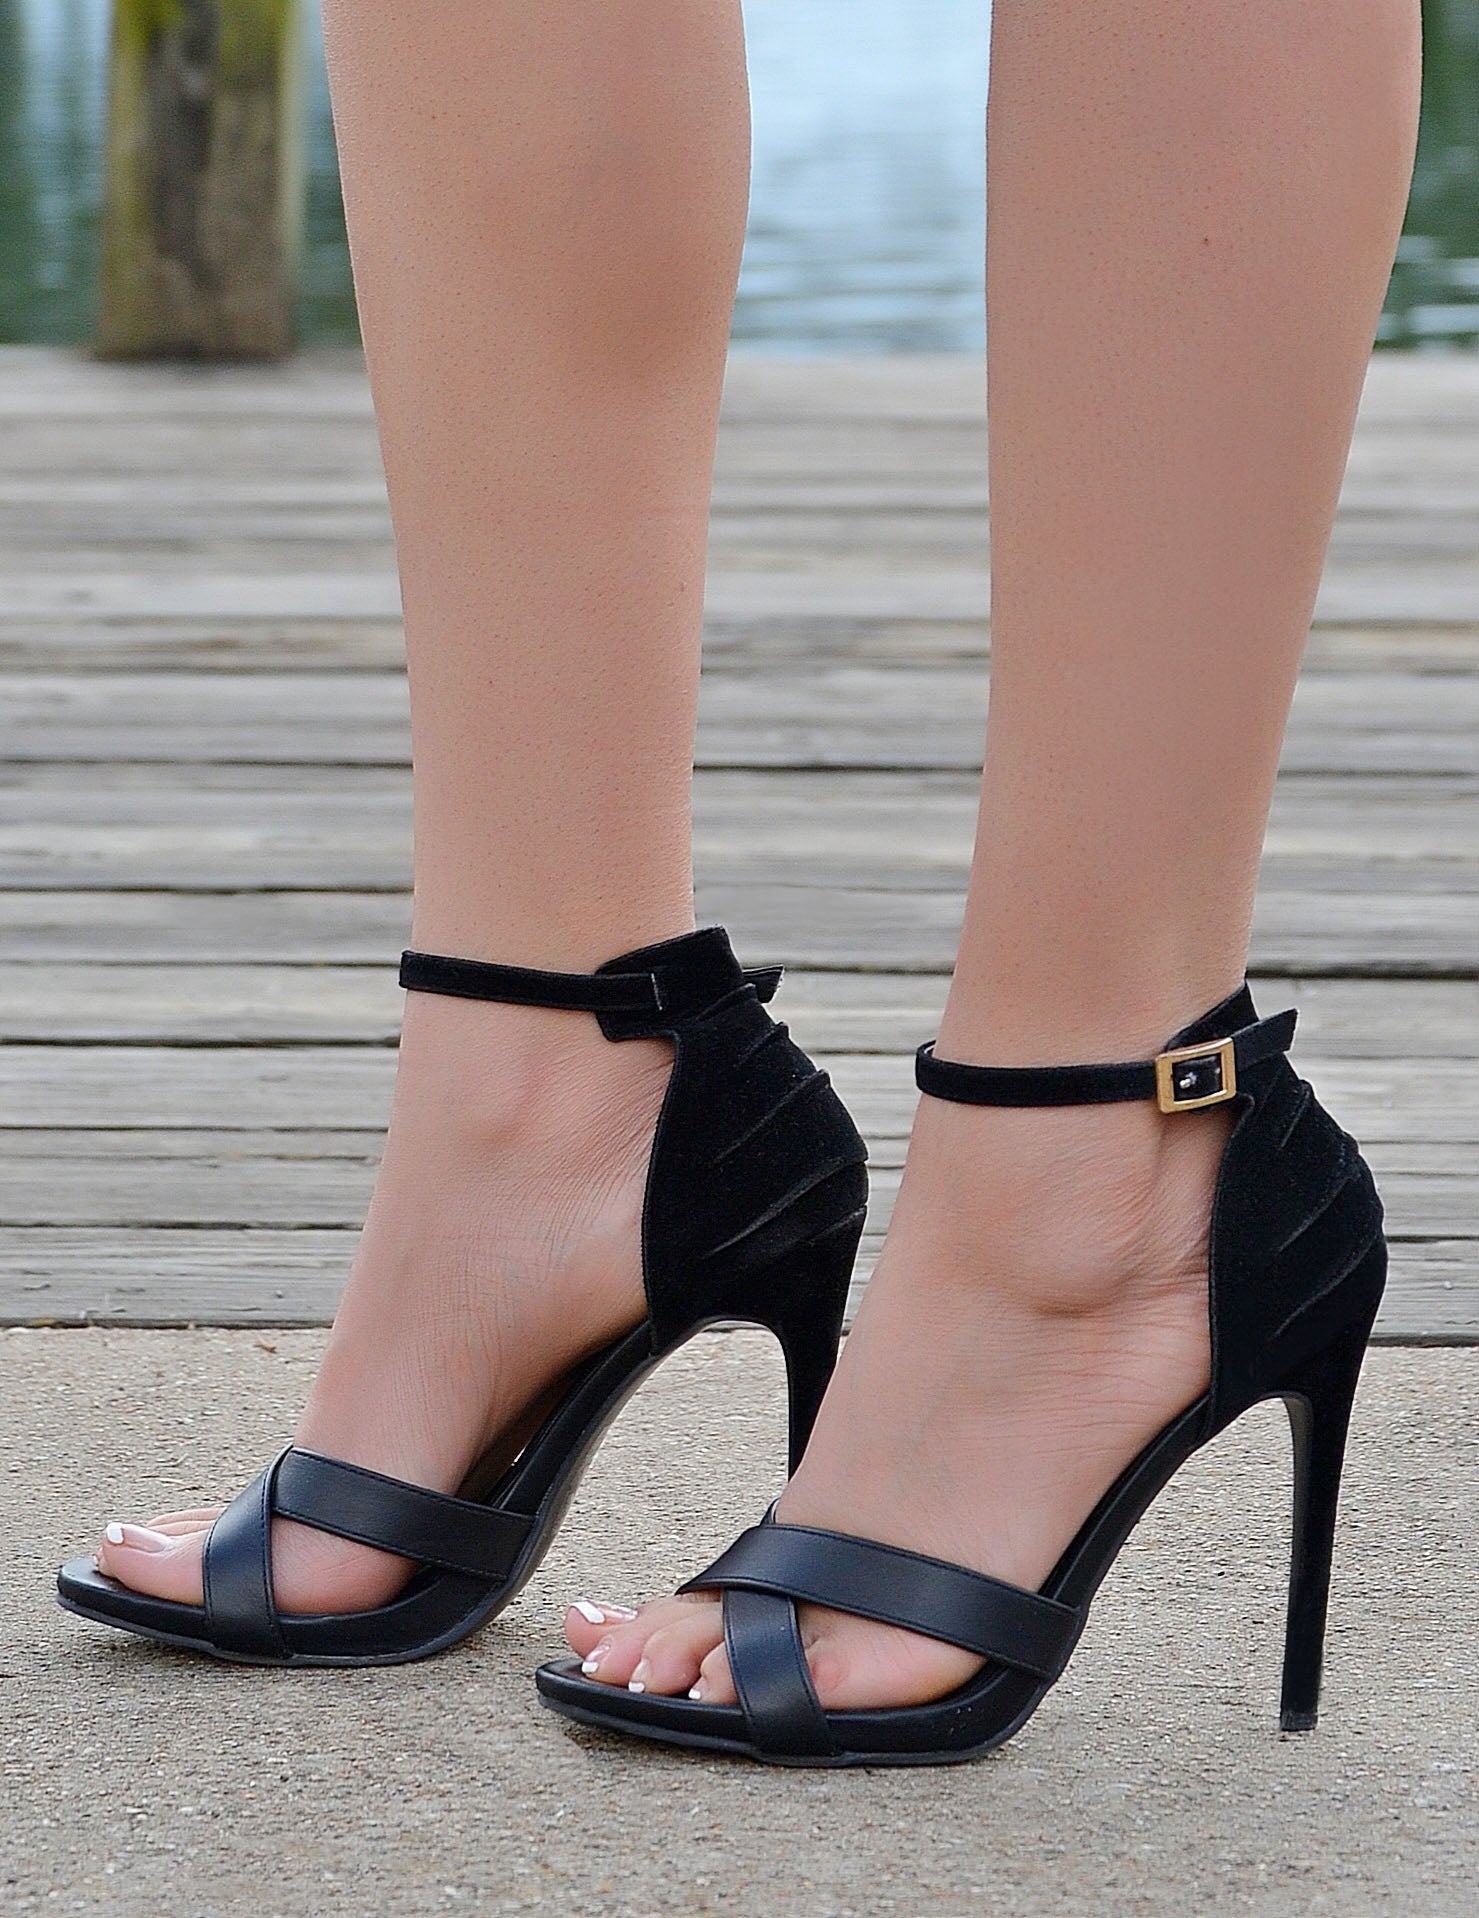 Women's Black Ankle Strap Open Toe Stiletto Heels